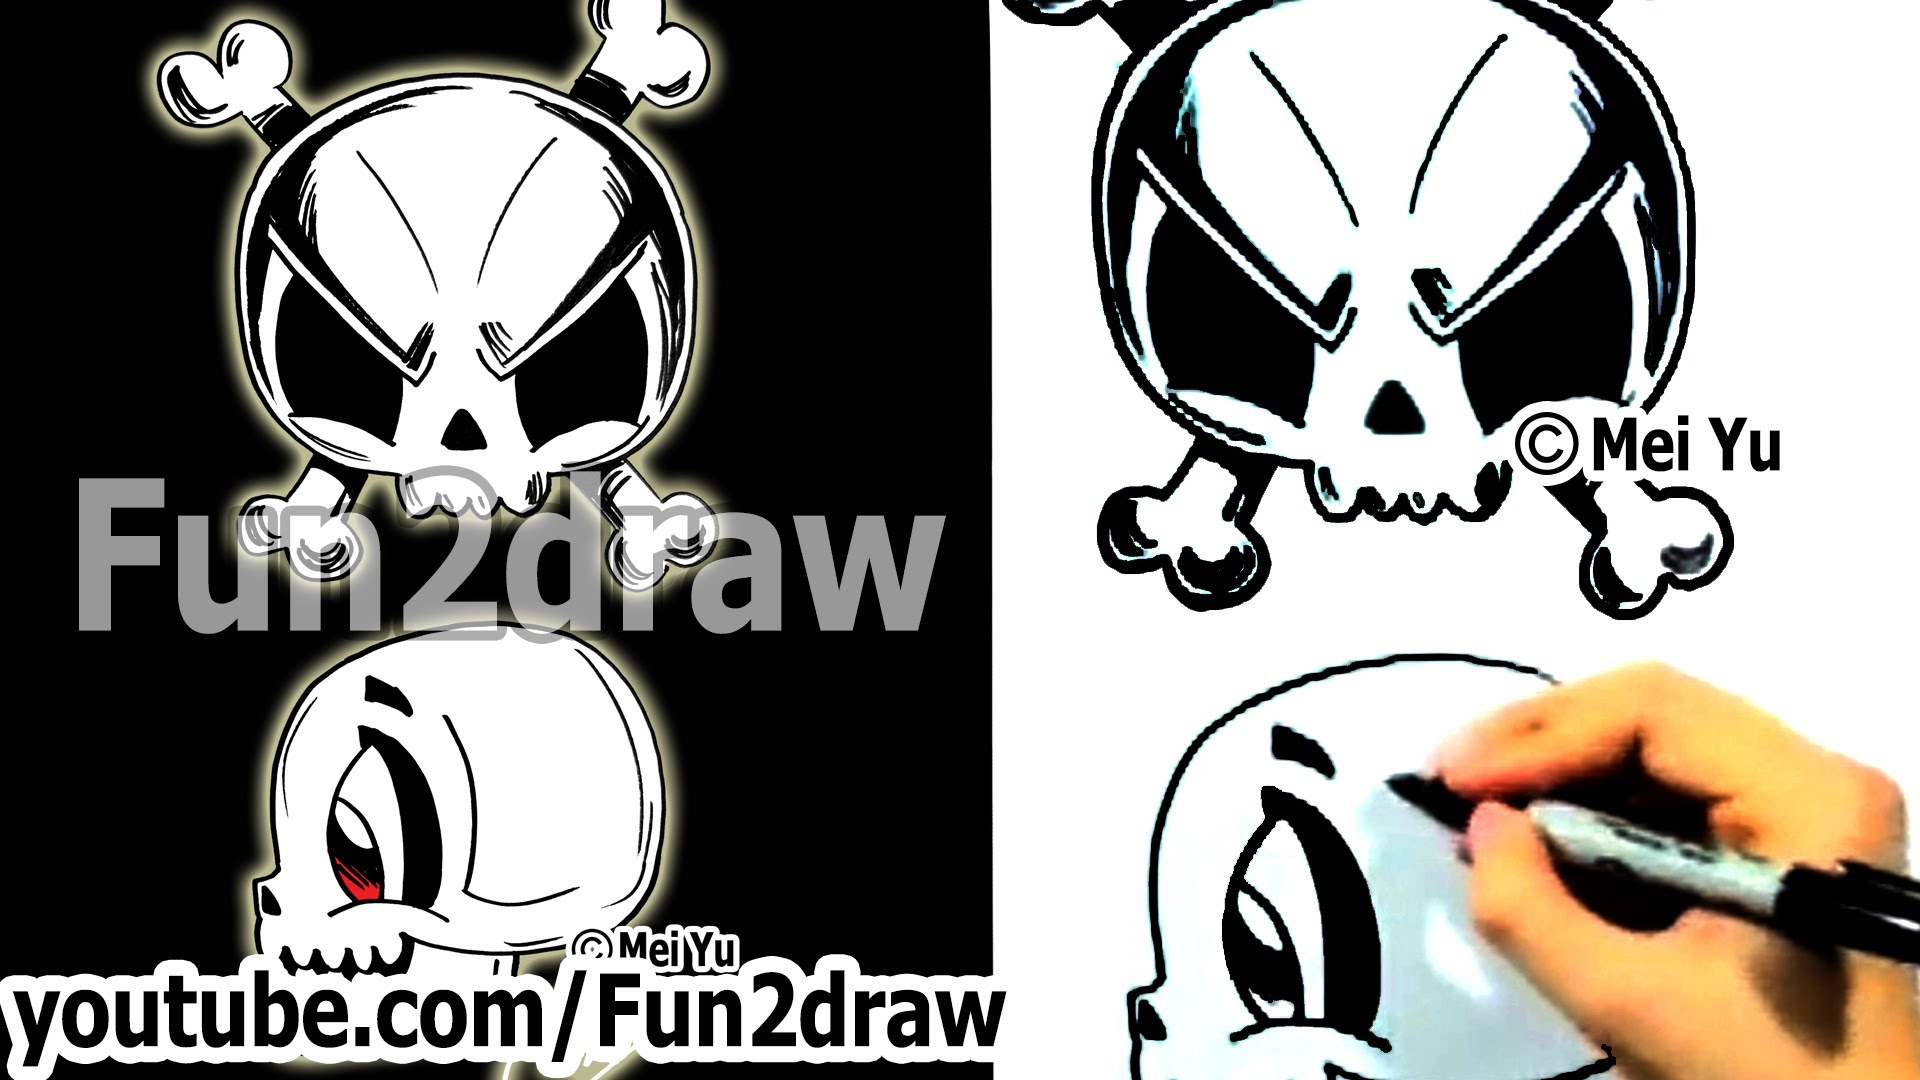 Drawn skull fun 2 Fun2draw Different to YouTube